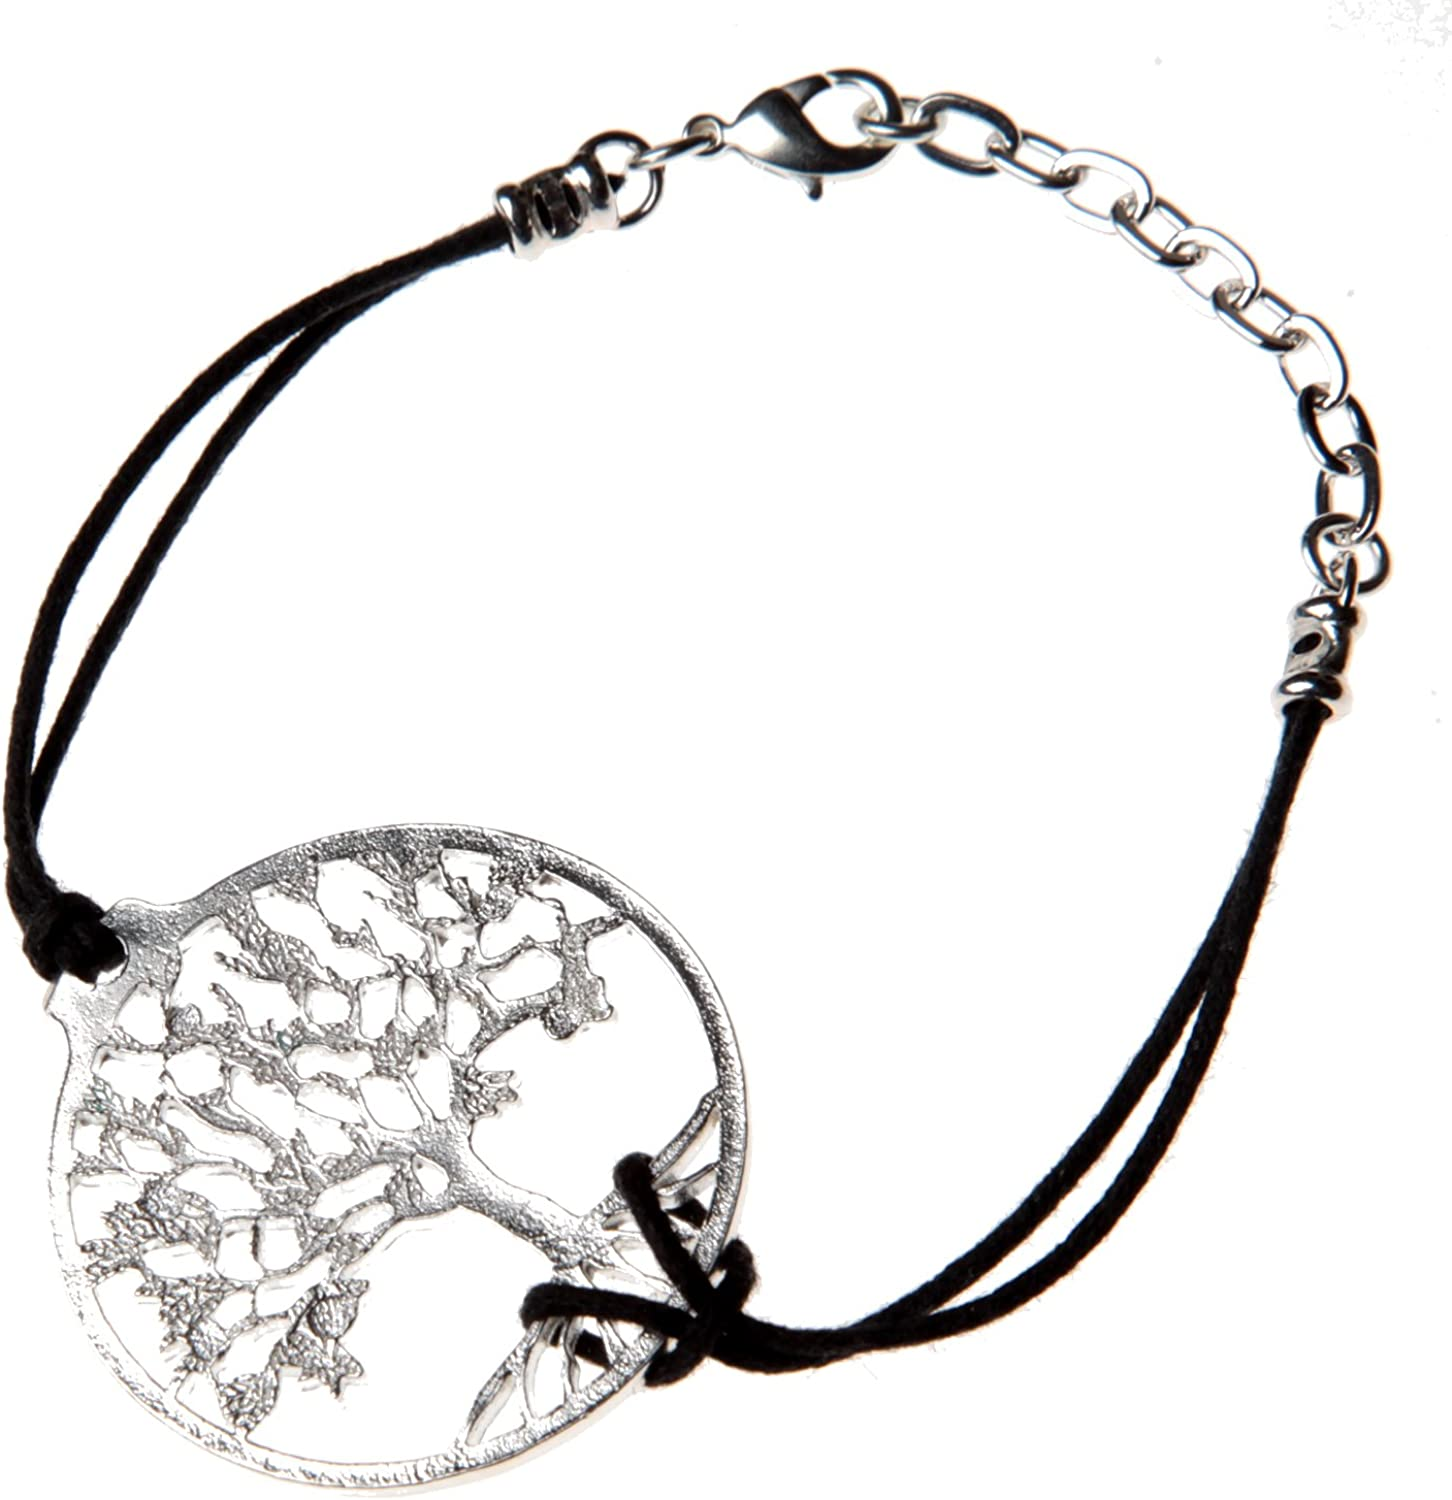 From War to Peace Tree of Adjustable Life Silver 店内限界値引き中 セルフラッピング無料 Bracelet テレビで話題 Dipped